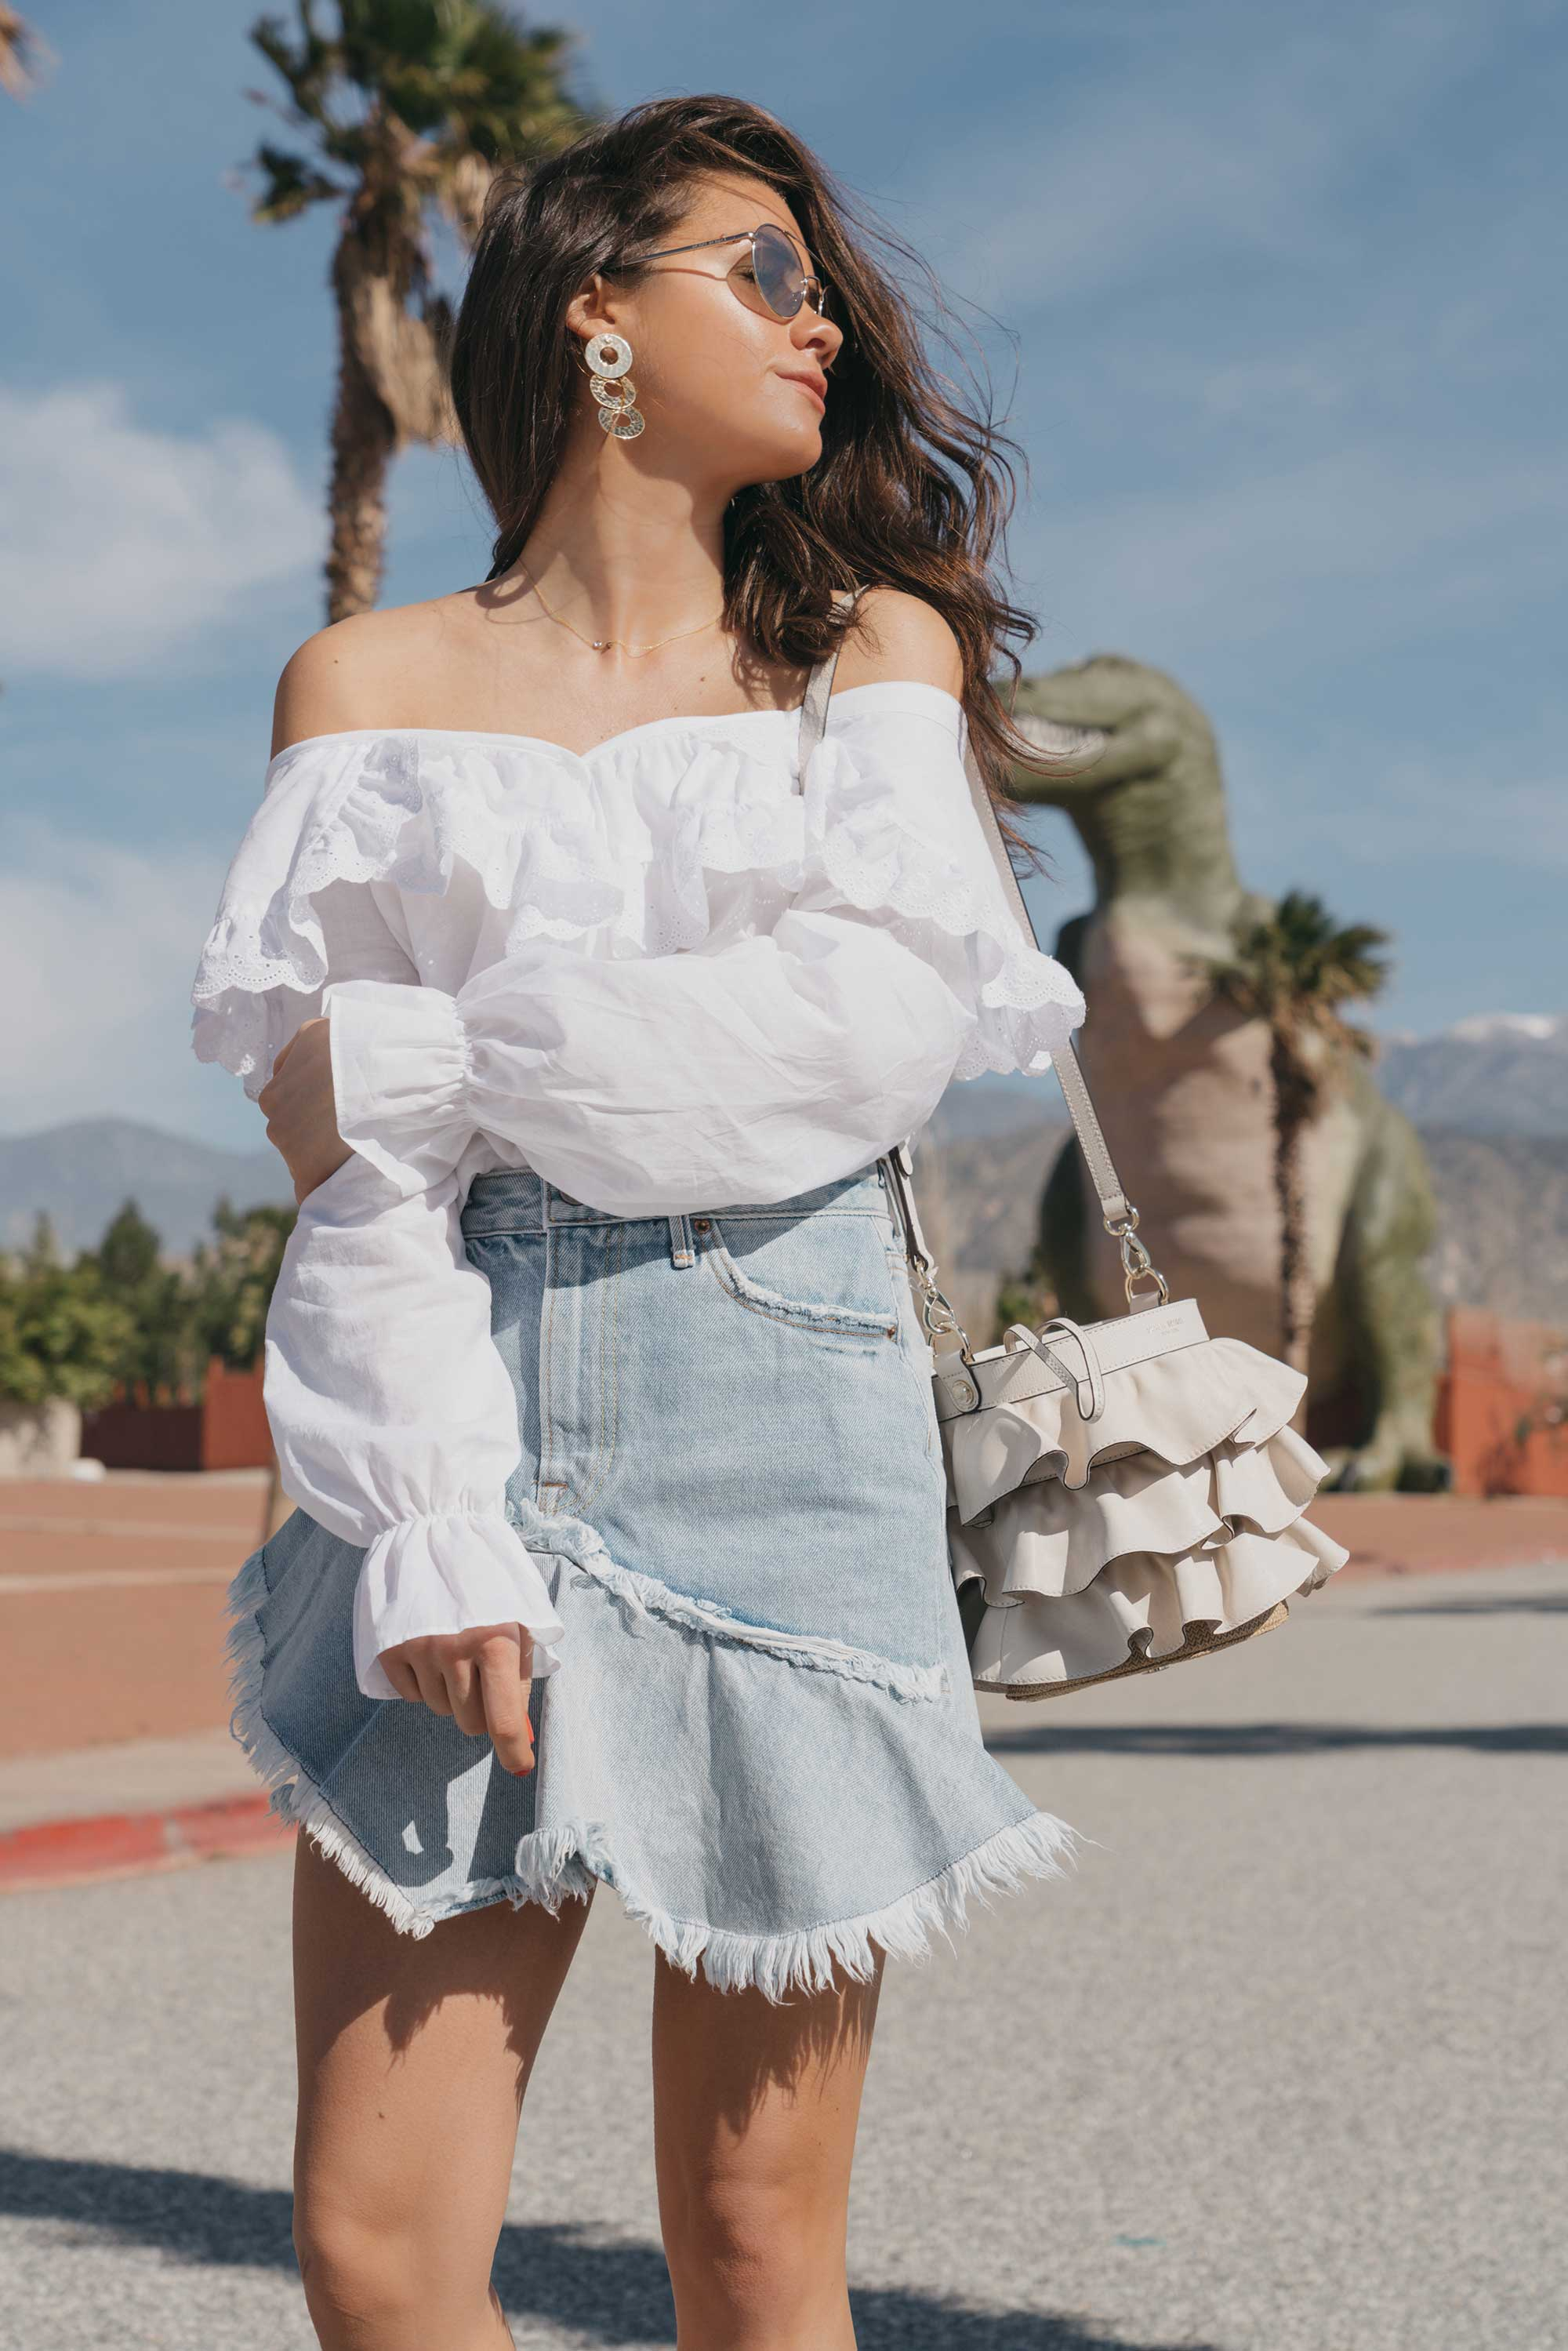 Festival-outfit-off-the-shoulder-ruffle-blouse-ruffle-denim-skirt-cabazon-dinosaurs7.jpg